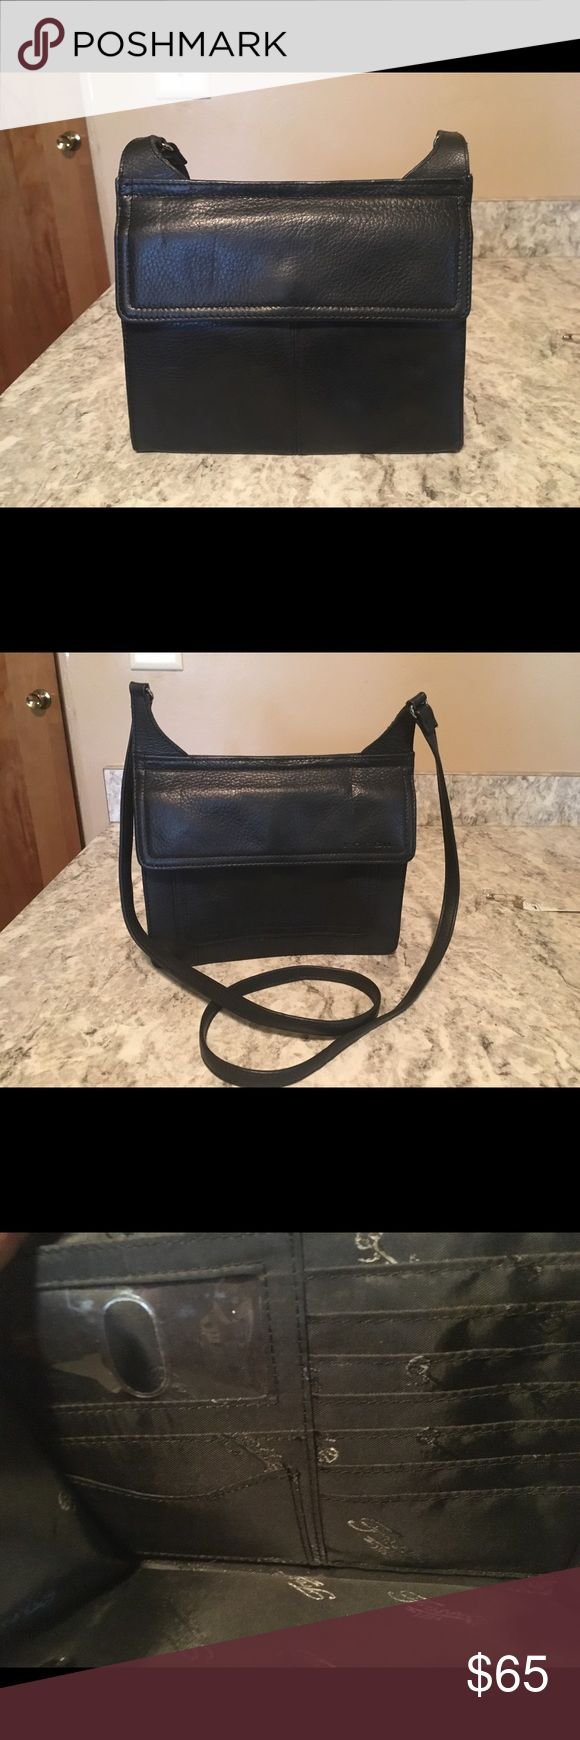 Fossil Bag. Class Black Leather Crossbody. Used but in Great Condition. 8 W x 7 L. Drop Inch 23. Spacious Front and Back Snap Closure. Several Card Slots and ID Slot. Fossil Bags Crossbody Bags